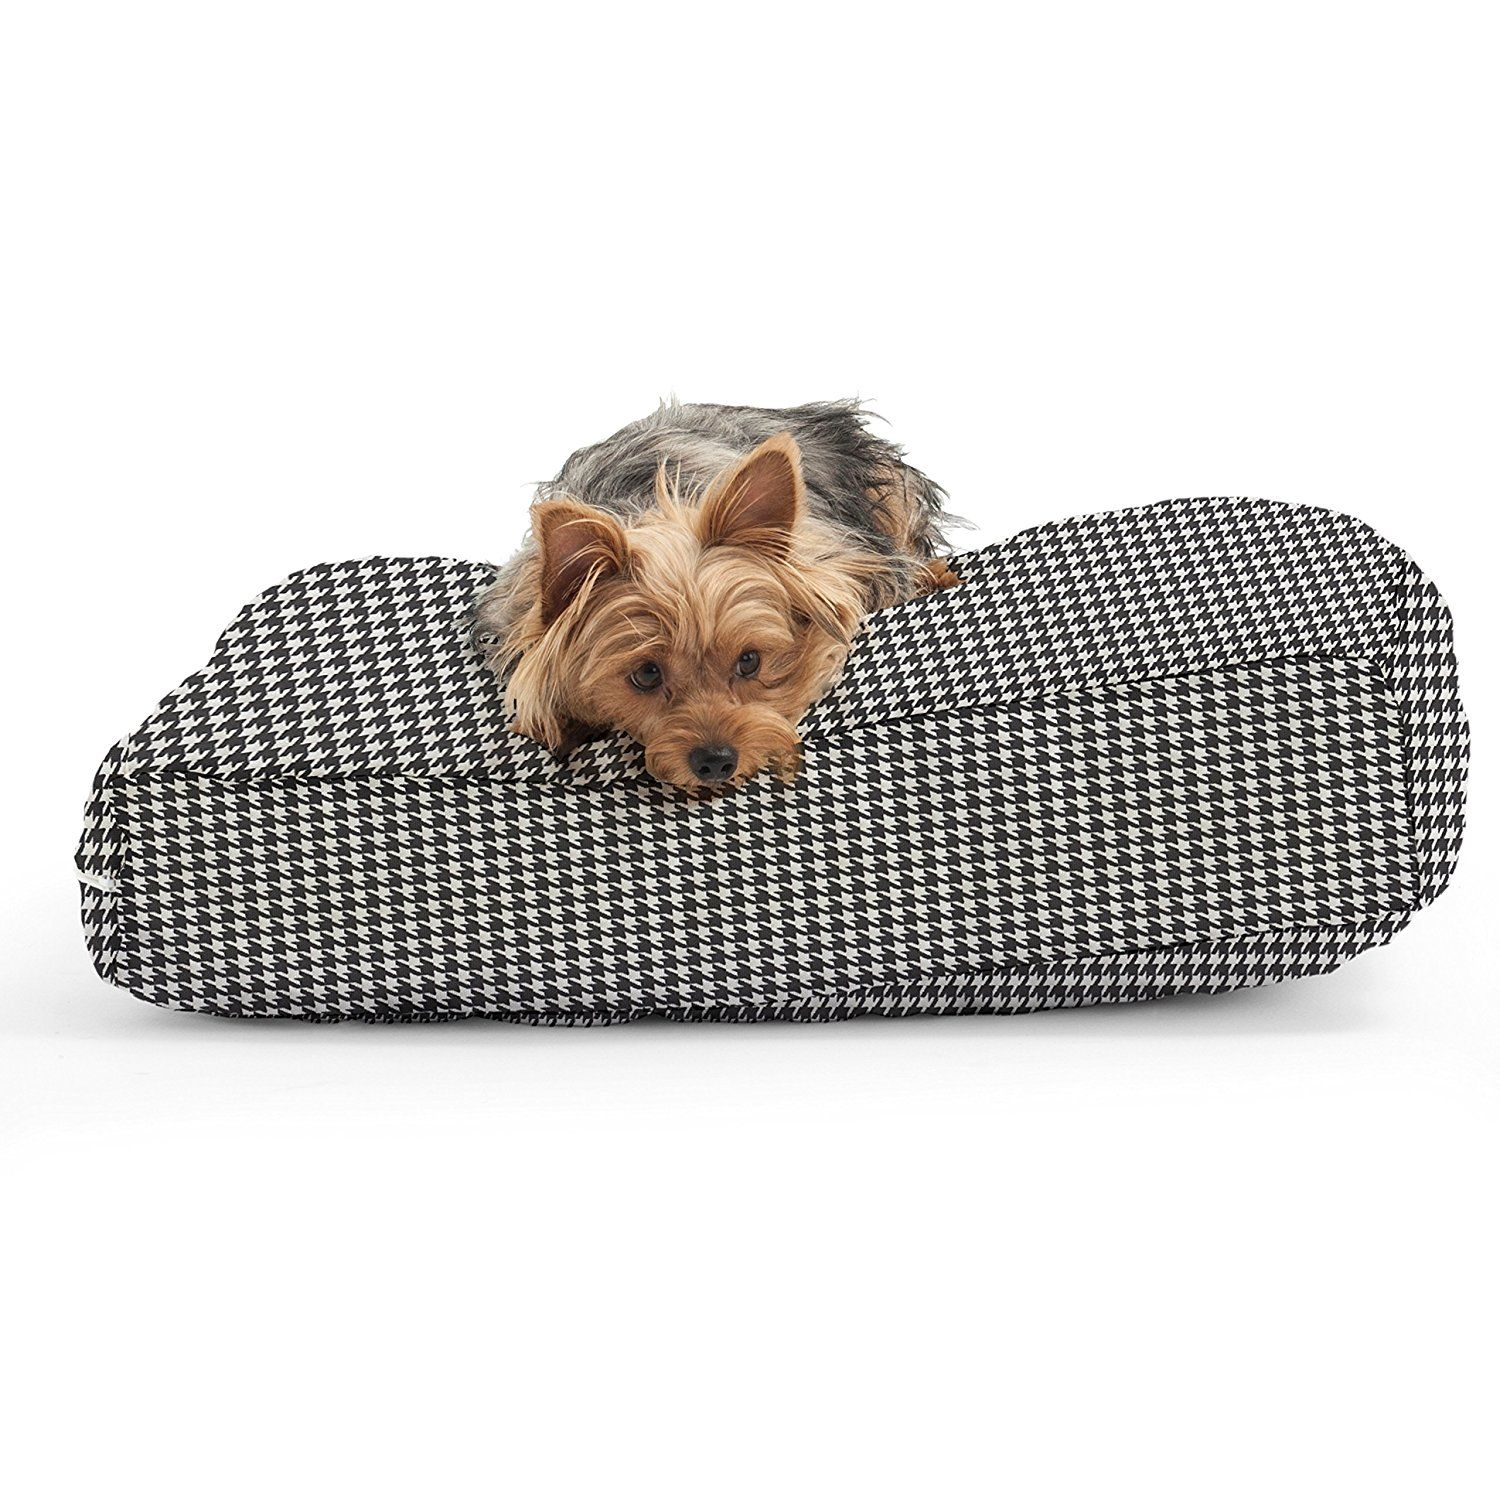 The X- small DogSack Rectangle Memory Foam Black/ White Houndstooth Print Twill Pet Bed ** Find out more about the great product at the image link. (This is an affiliate link and I receive a commission for the sales)